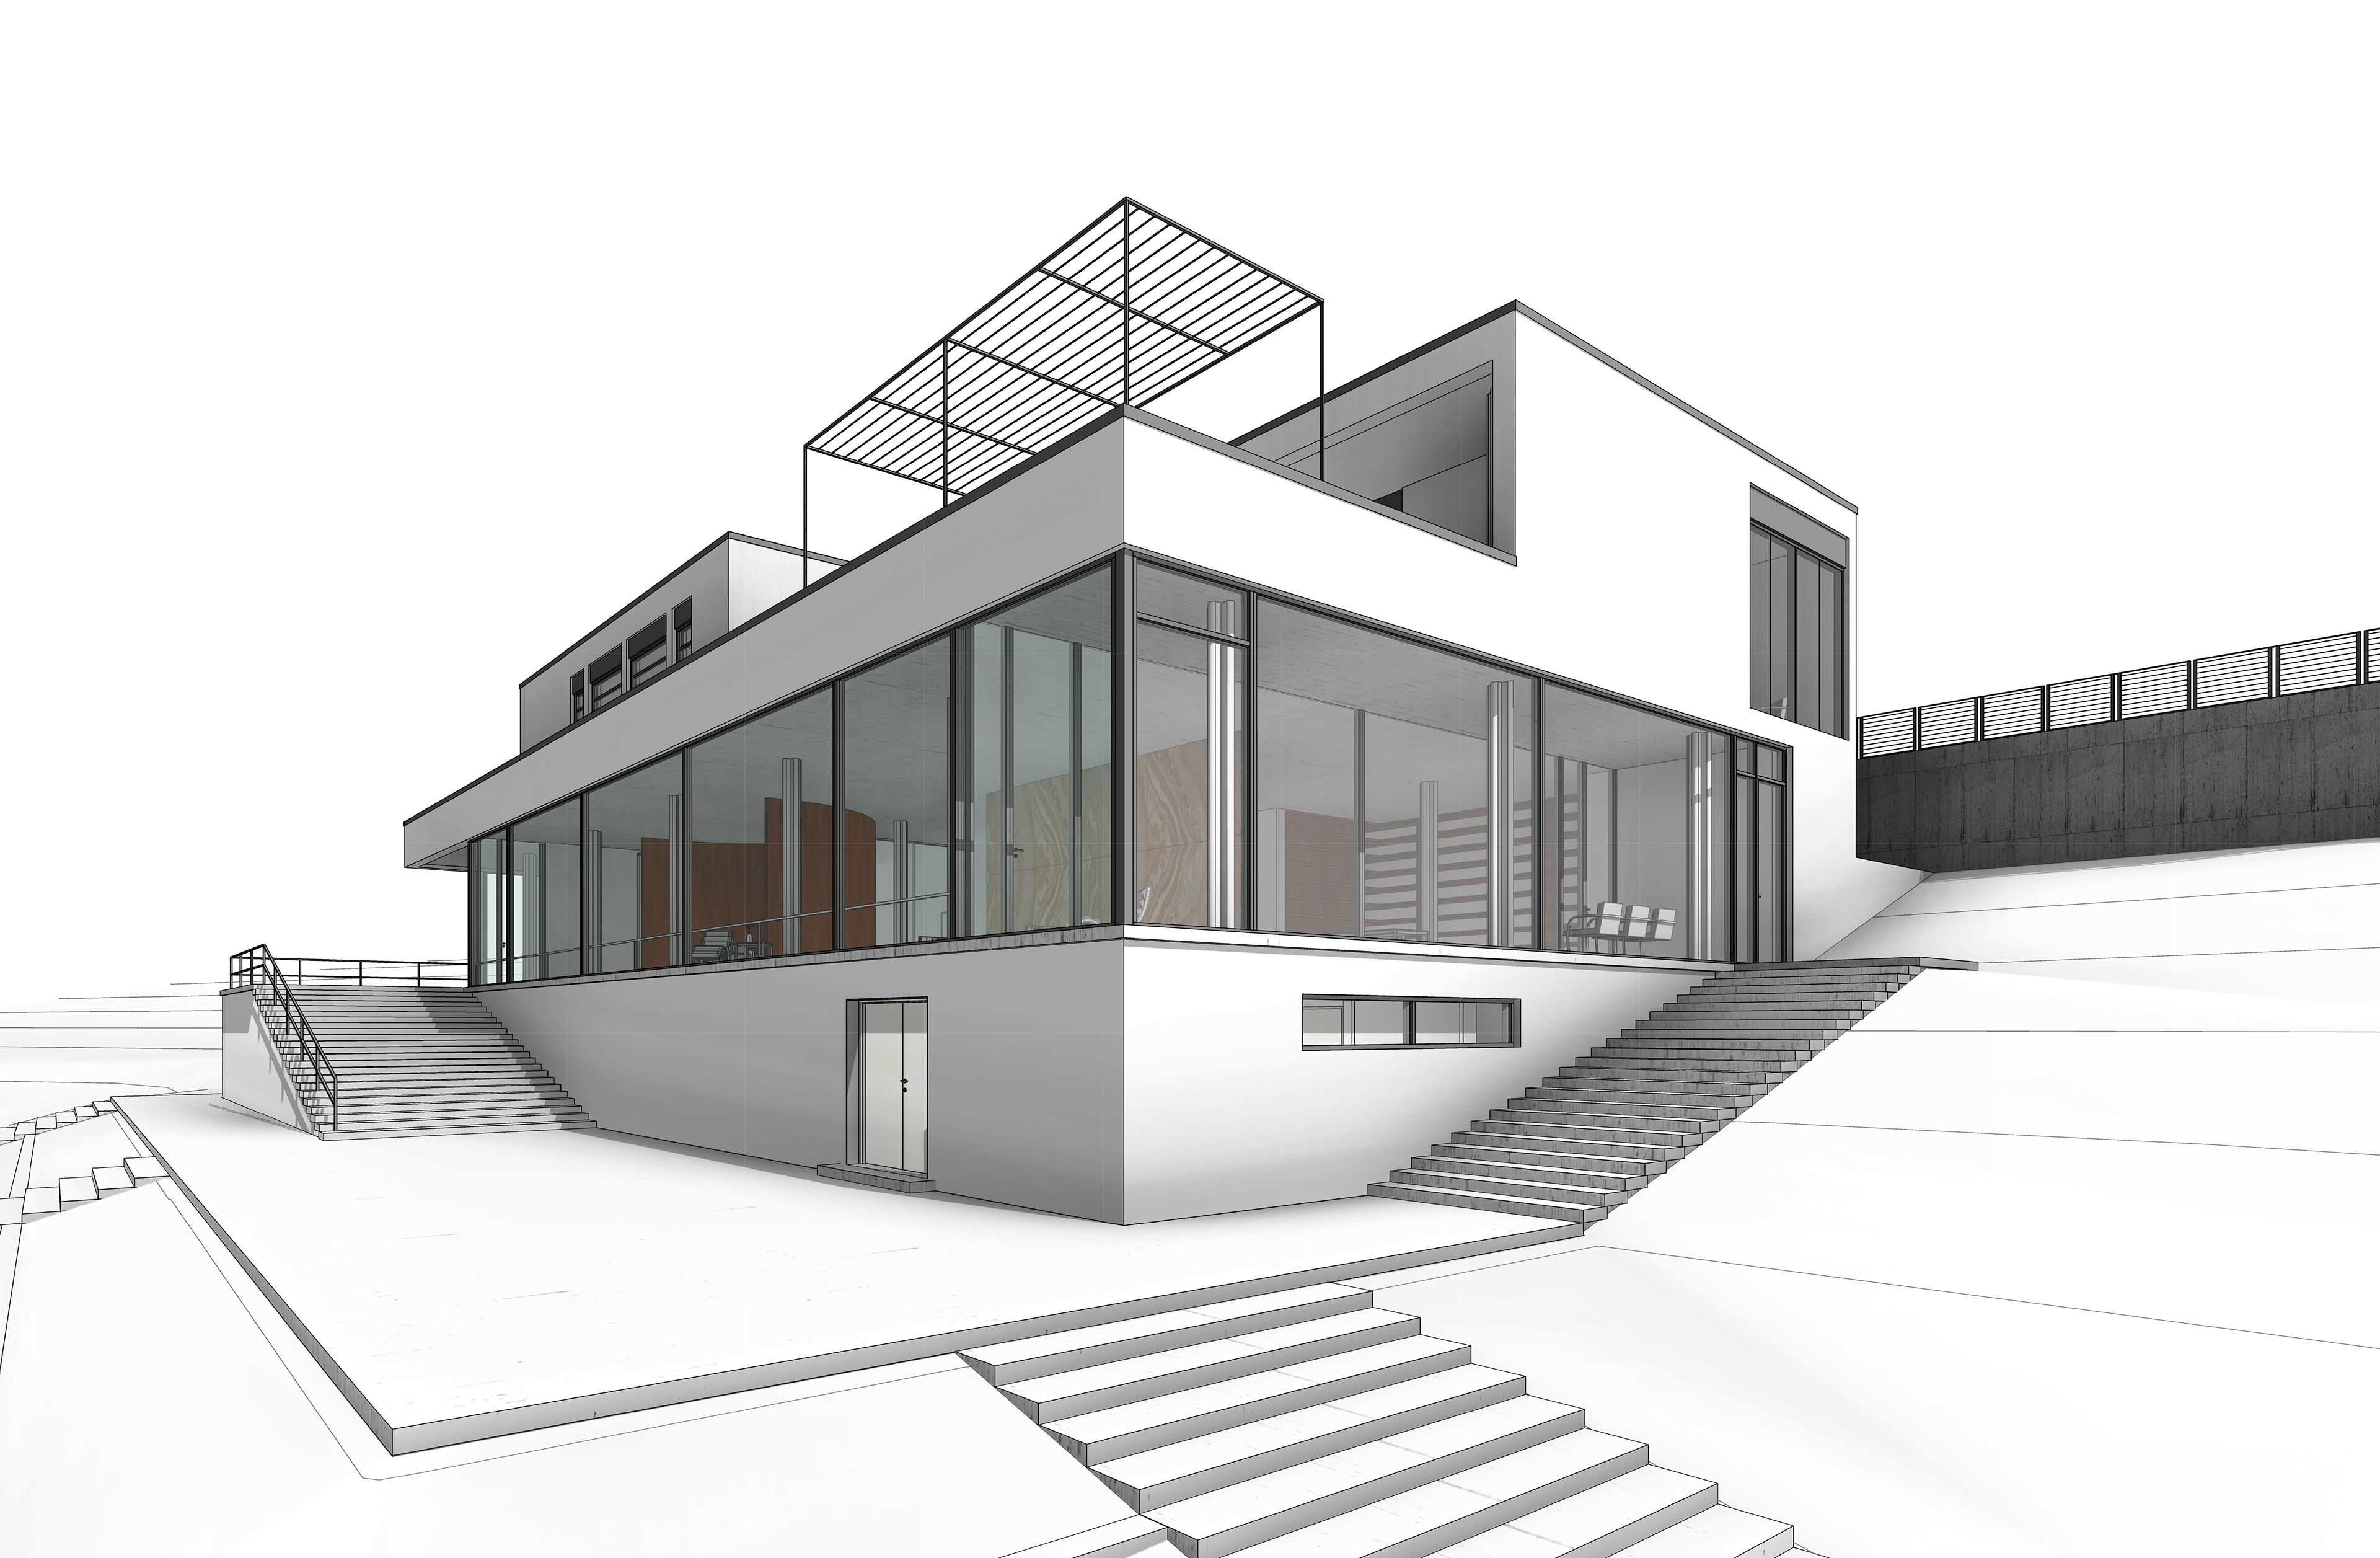 Revit training villa tugendhat tugendhat pinterest for Revit architecture modern house design